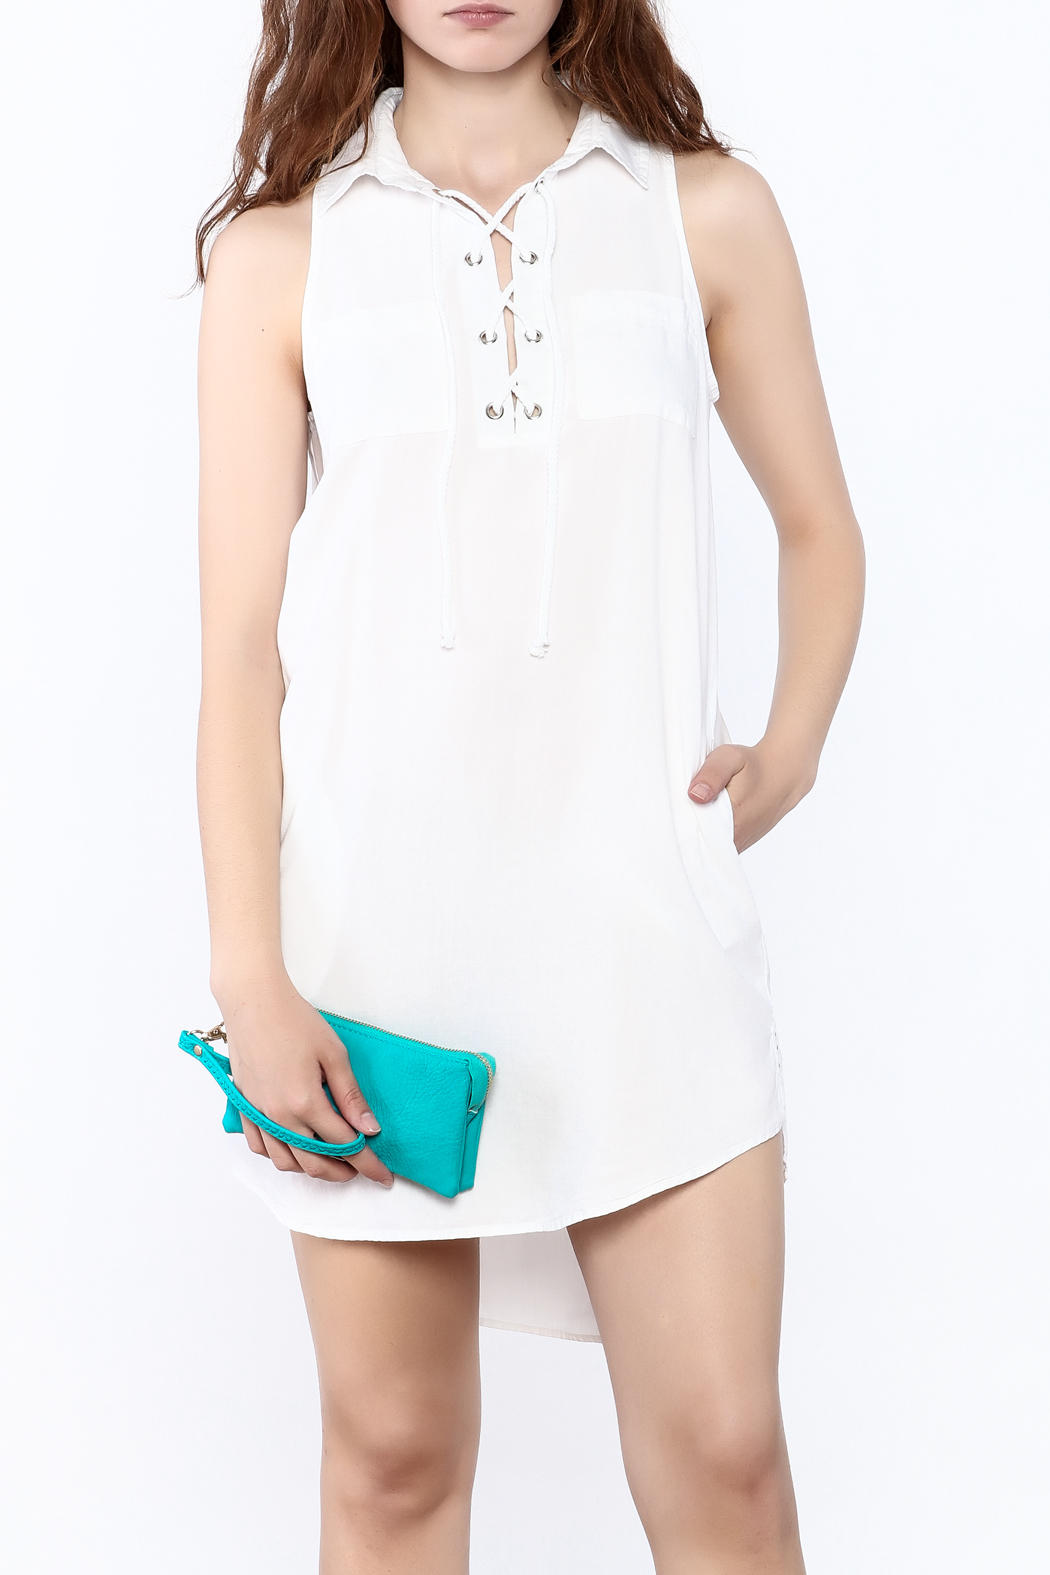 Velvet Heart White Sleeveless Dress - Main Image